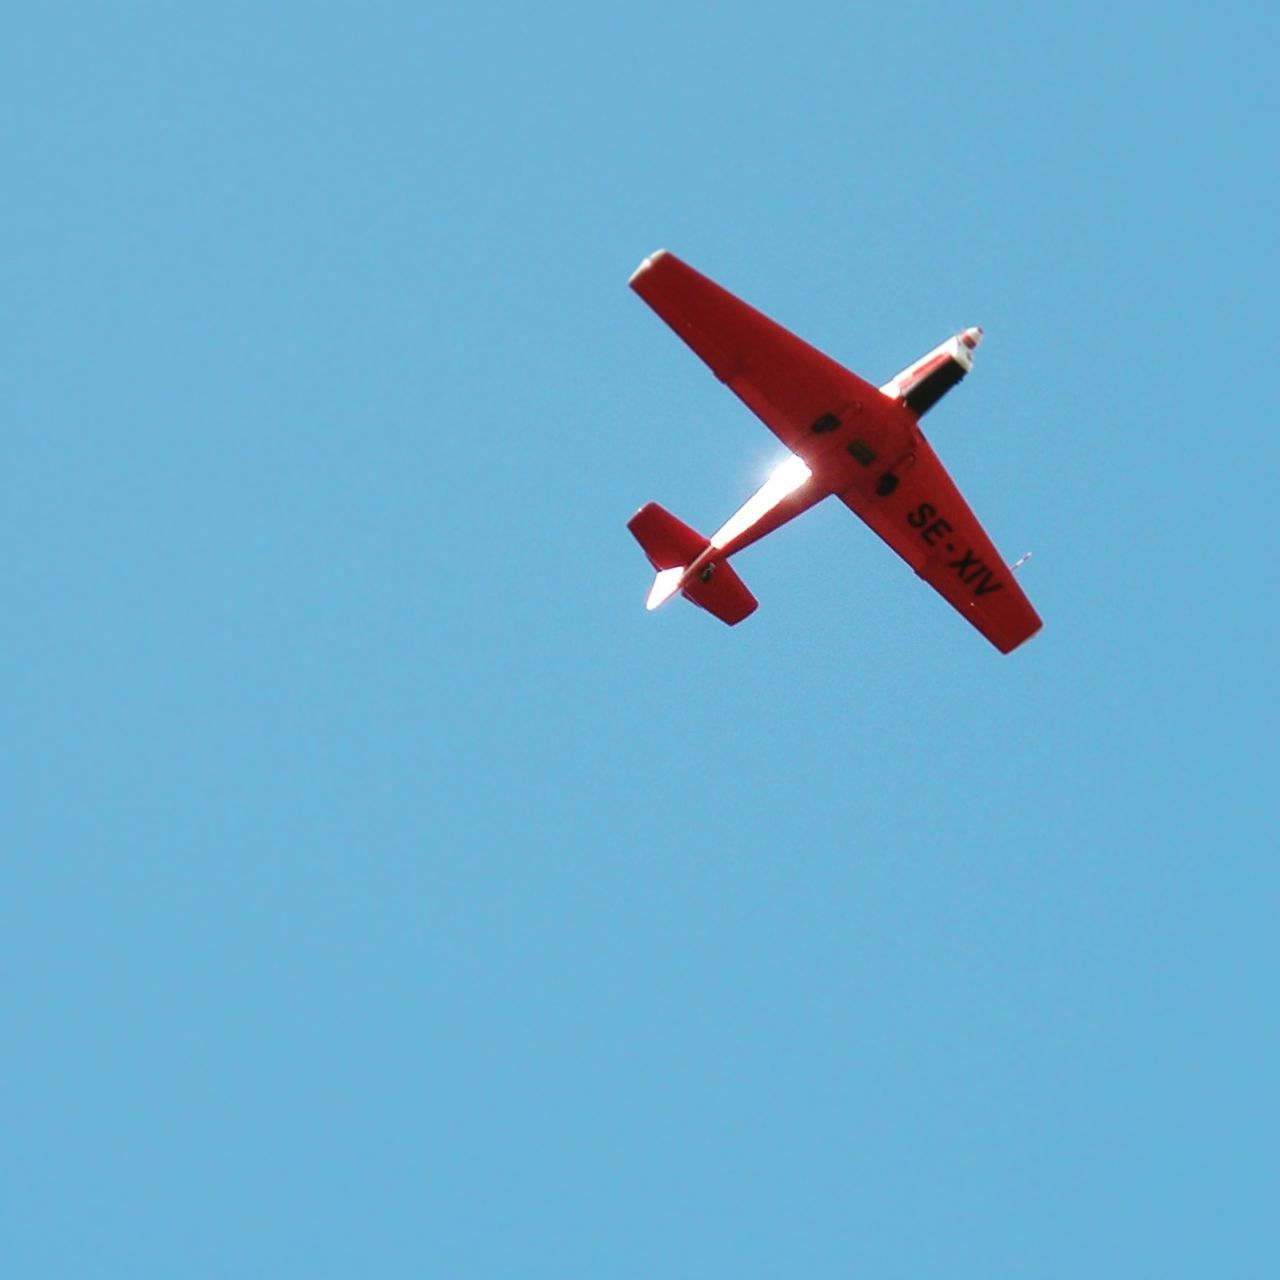 airplane, low angle view, flying, clear sky, copy space, air vehicle, blue, no people, day, transportation, red, journey, outdoors, model airplane, sky